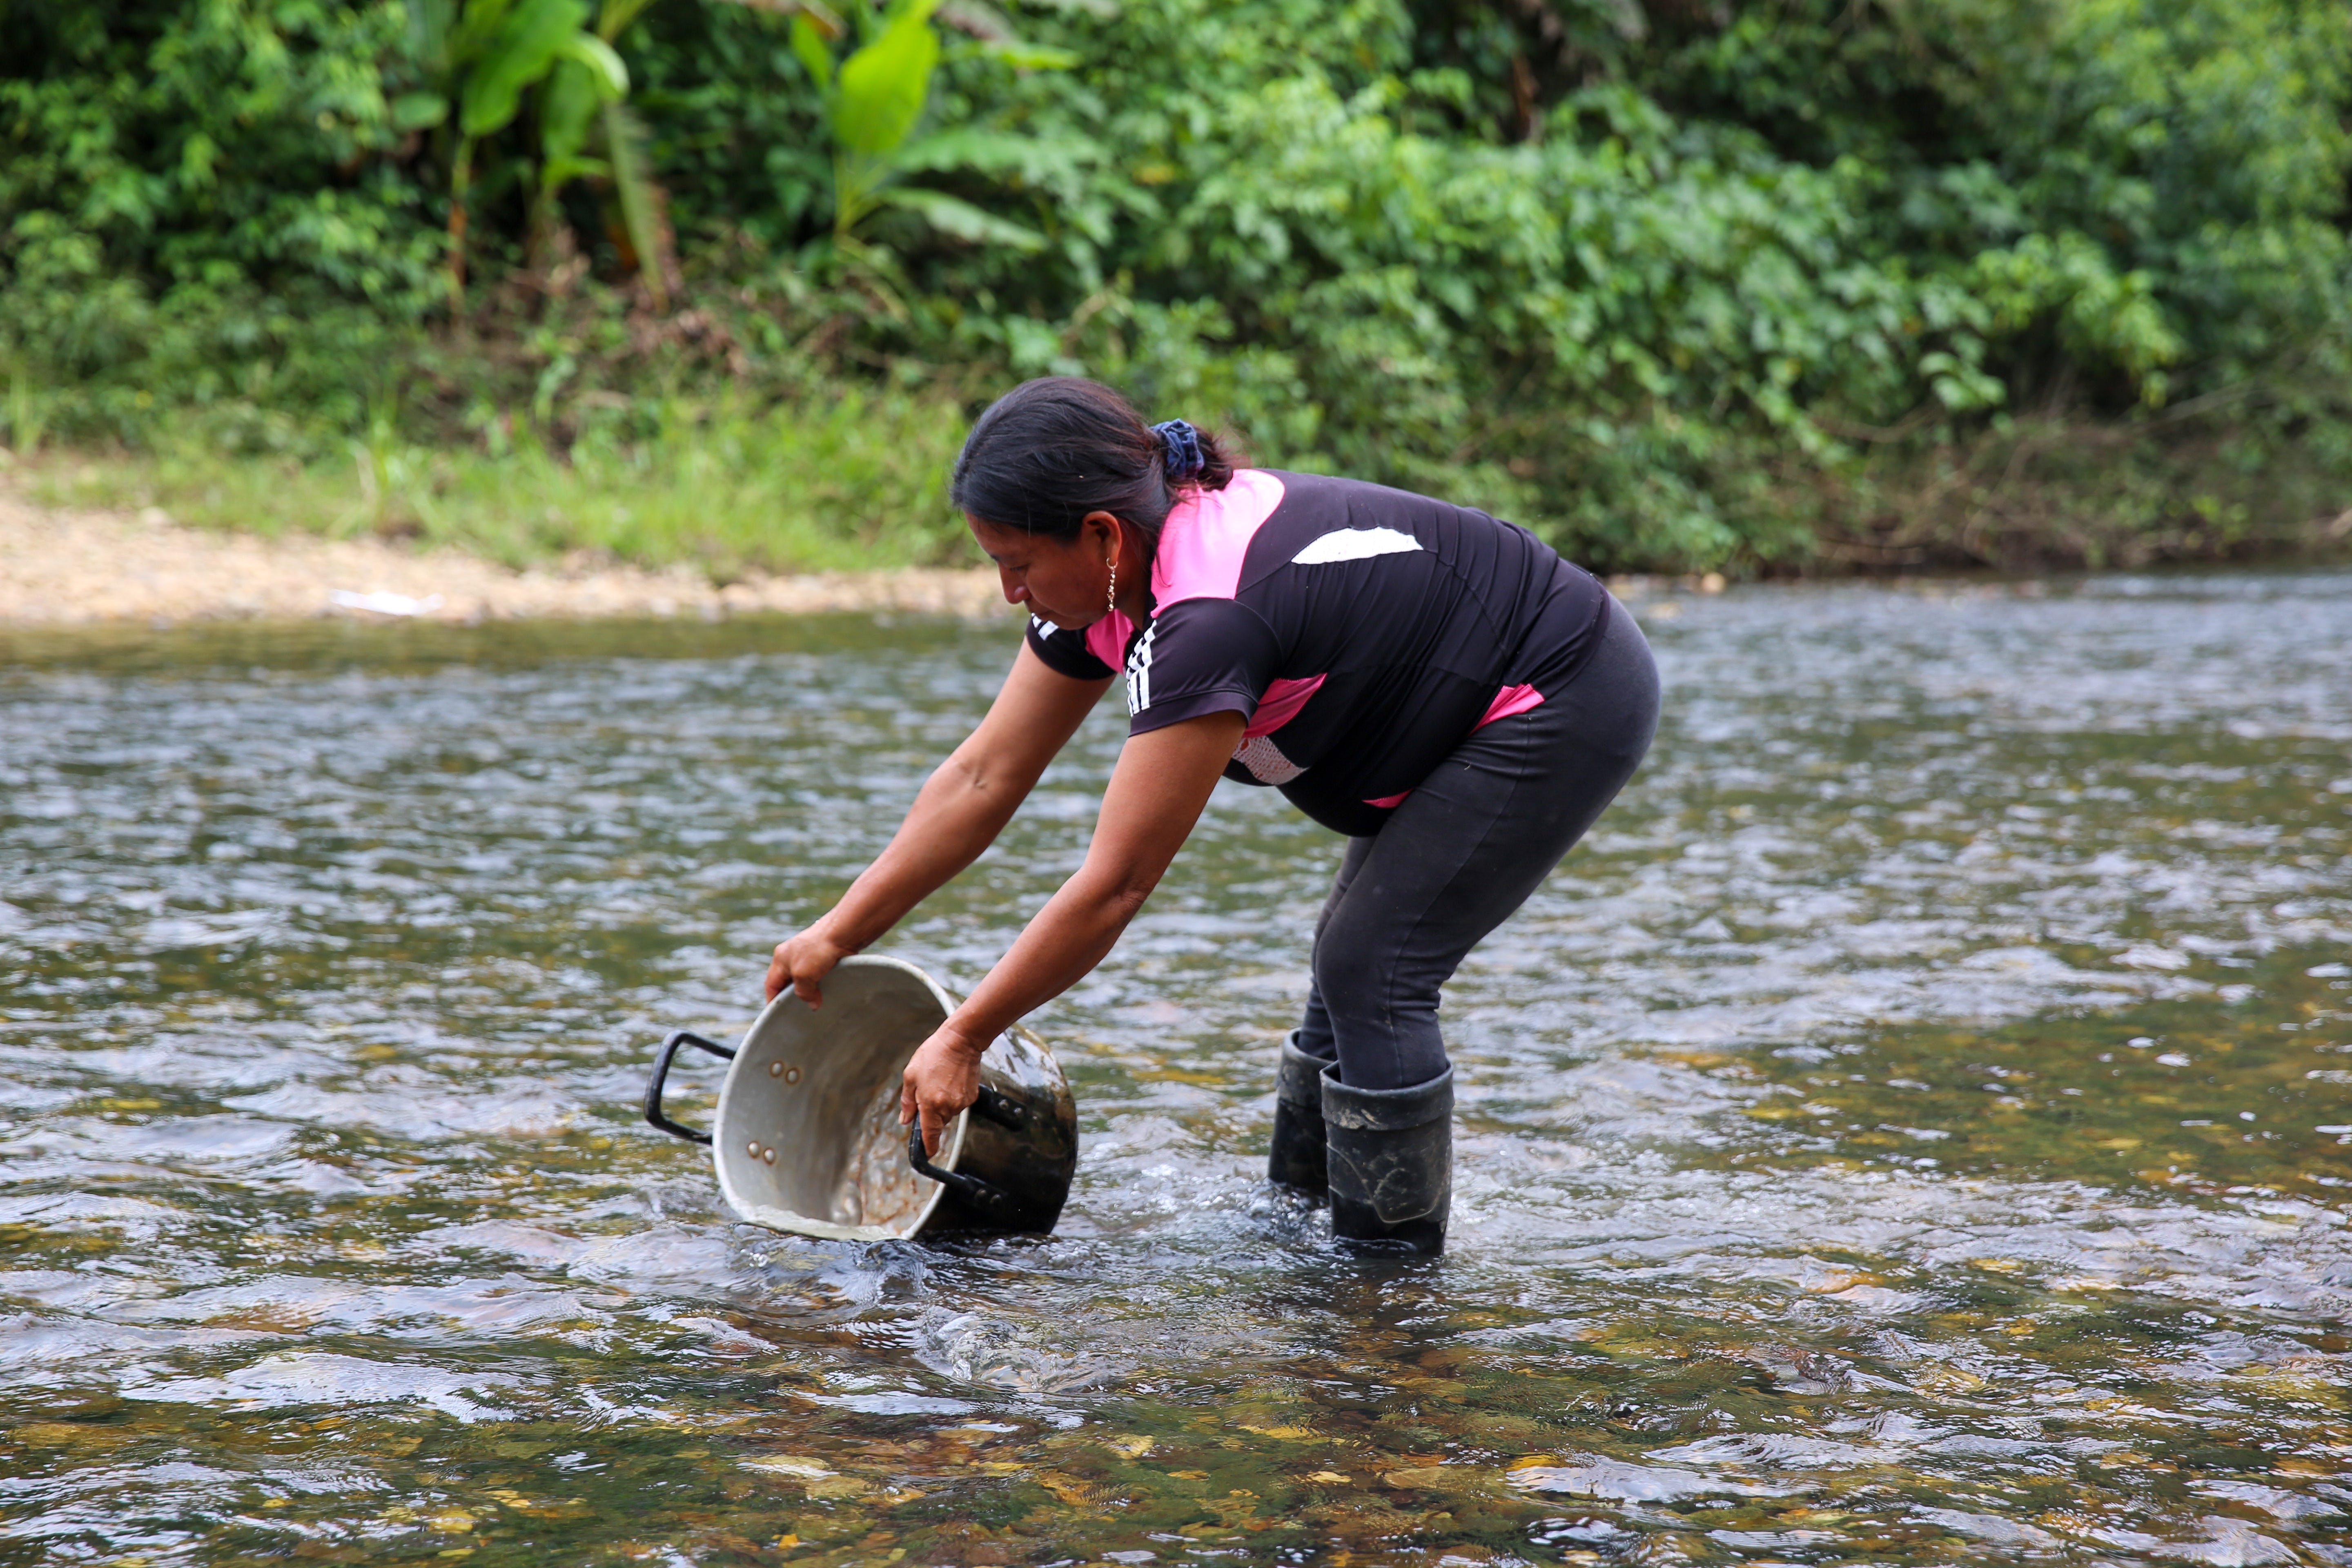 Indigenous Kichwa in the Napo Province of Ecuadorian Amazon basin, where Louisville-based MedWater works to bring safe water, sanitation and hygiene to fight rampant waterborne illness.